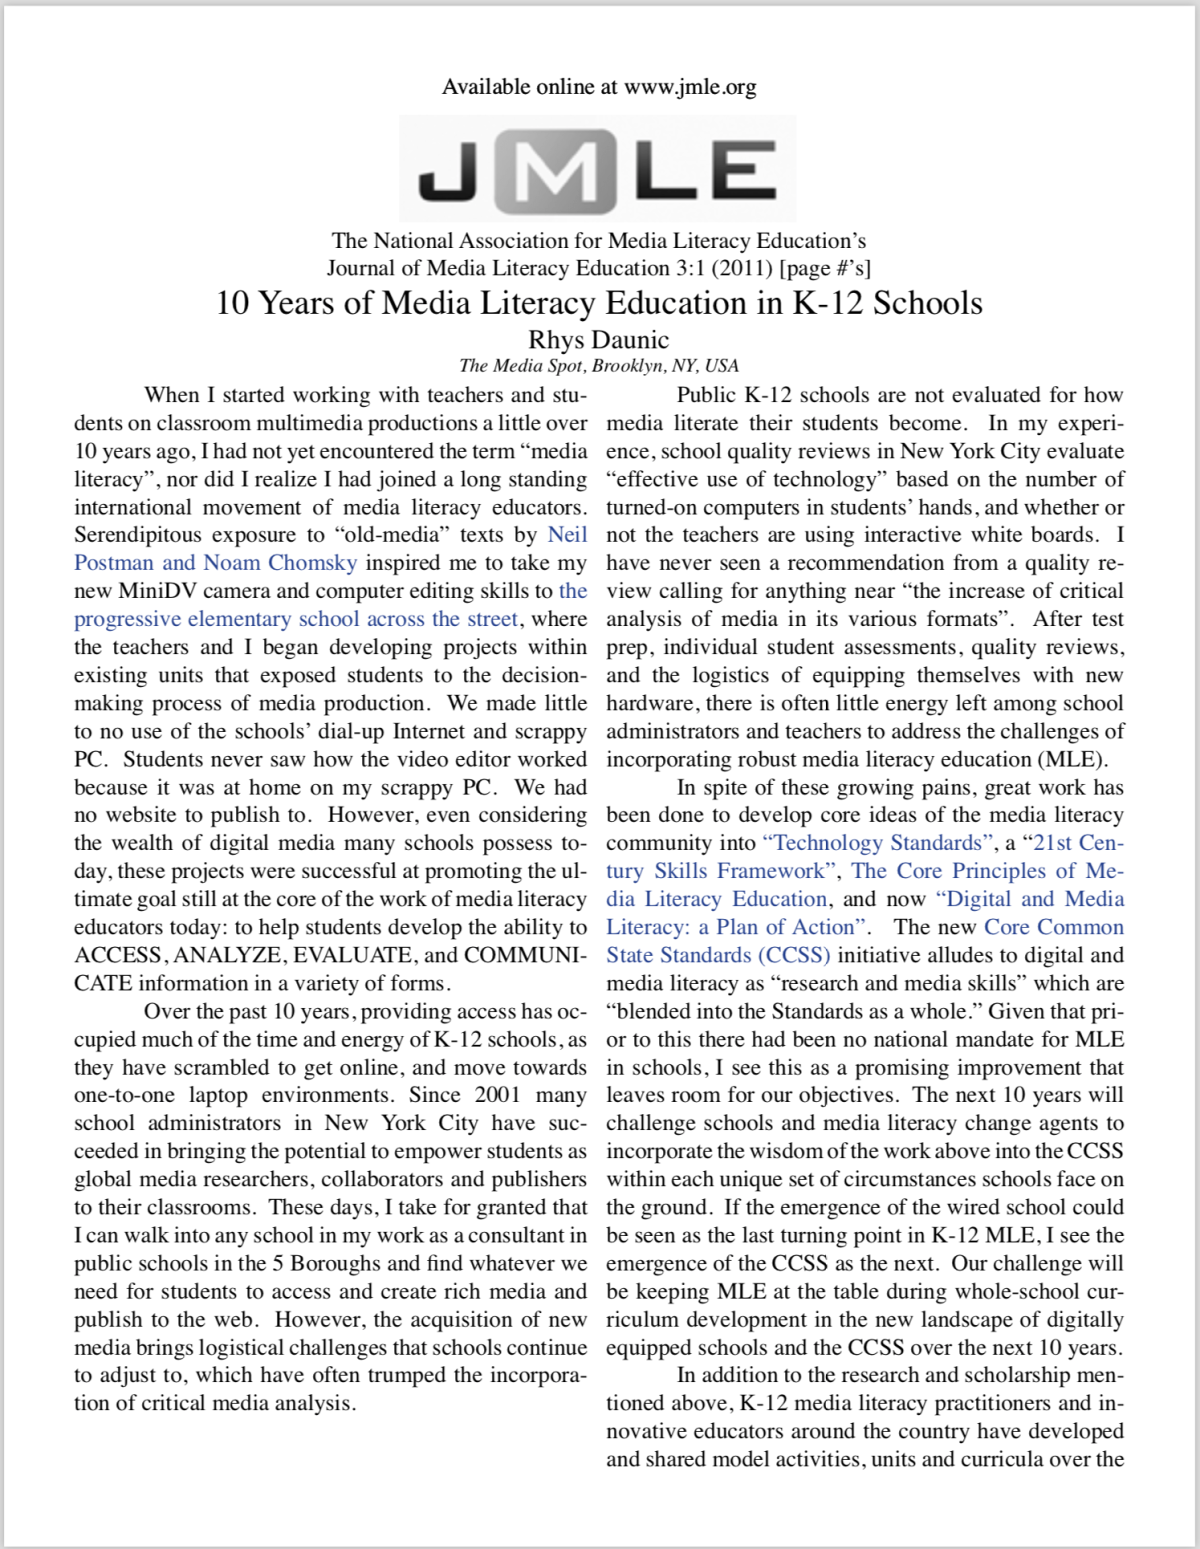 TMS + 10 Years of Media Literacy Education in the Journal of Media LiteracyEd.